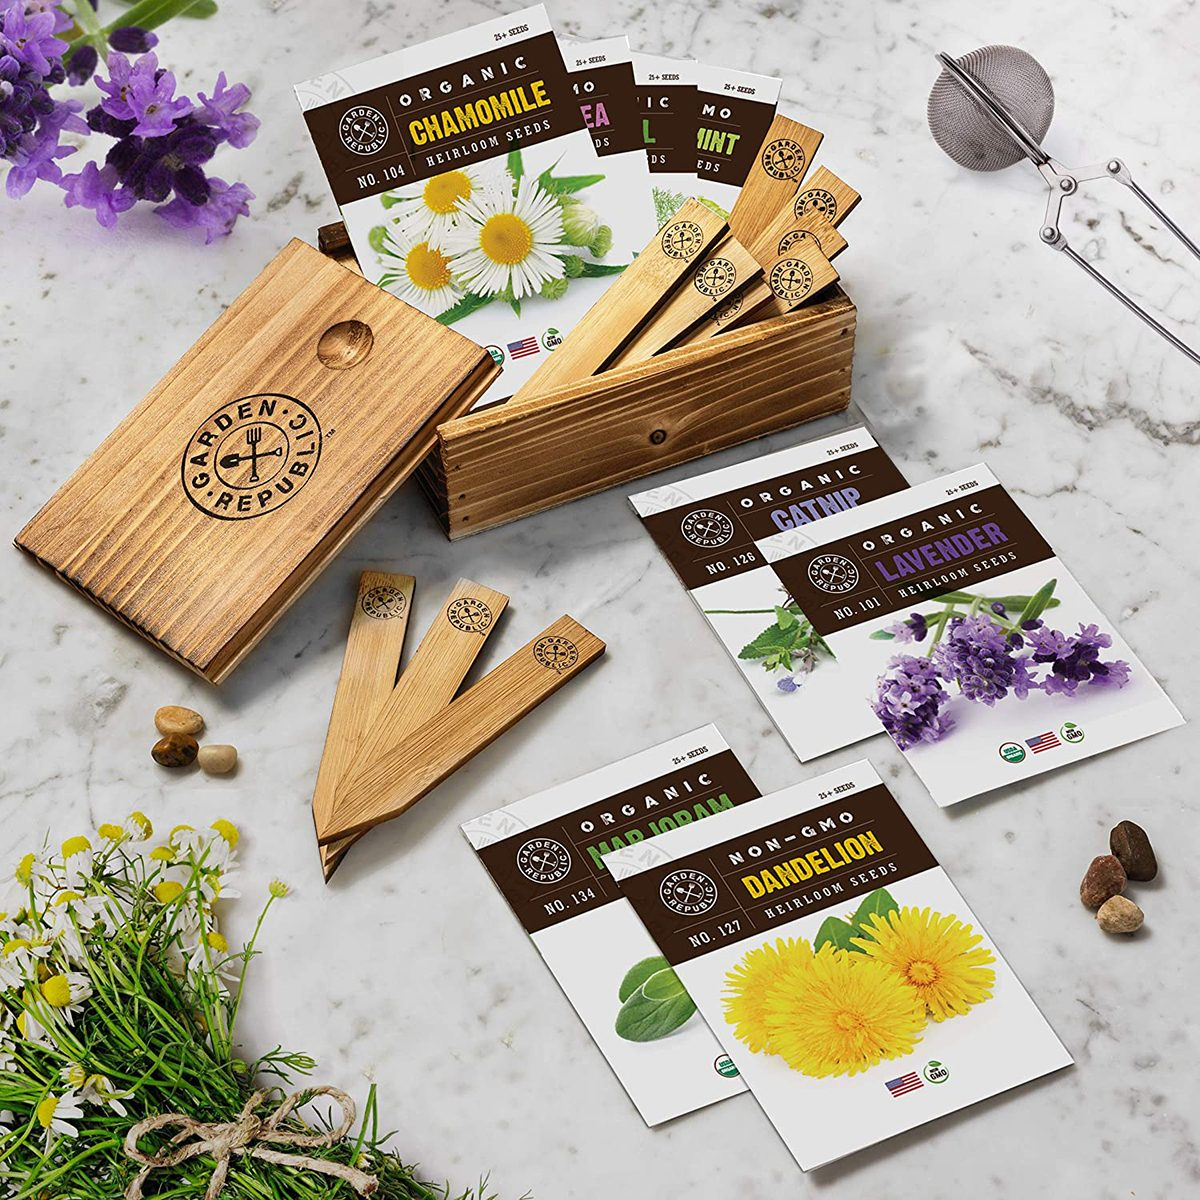 Herb Garden Seeds for Planting